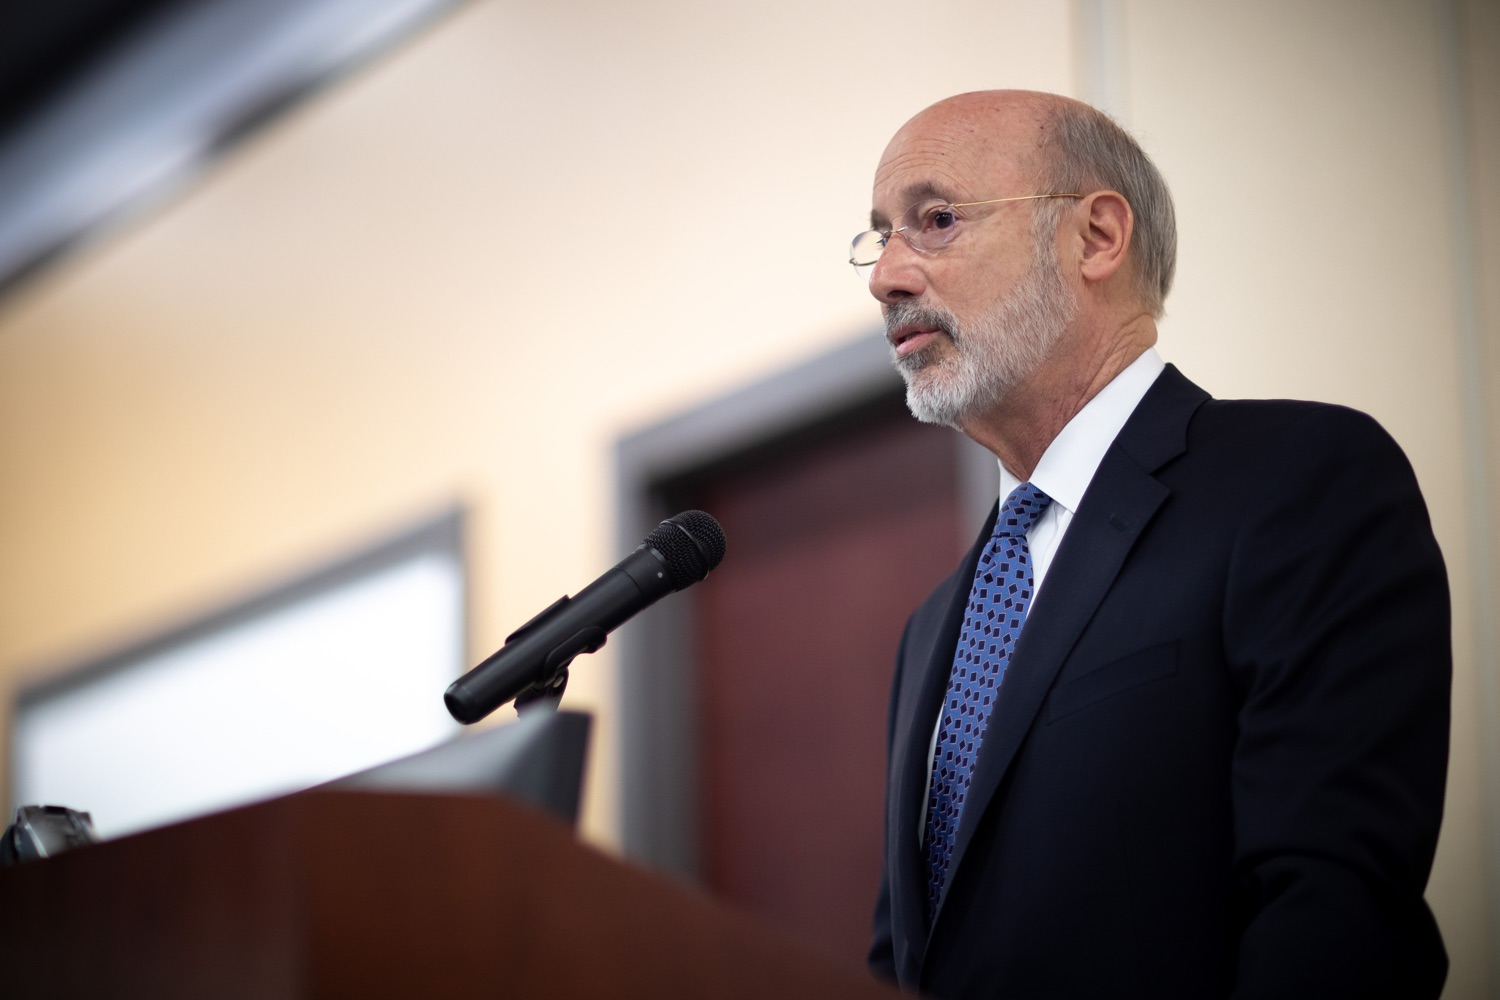 "<a href=""http://filesource.abacast.com/commonwealthofpa/photo/17598_gov_charter_schools_dz_016.jpg"" target=""_blank"">⇣ Download Photo<br></a>Pennsylvania Governor Tom Wolf speaks about charter school reform at a meeting of the Pennsylvania Association of School Administrators.  Governor Tom Wolfs commonsense plan to improve the educational quality of charter schools and control rising costs will save nearly $280 million a year, the governor told the Pennsylvania Association of School Administrators today. The governor has a three-part plan to fix Pennsylvanias charter school law which is regarded as one of the worst in the nation.  - Harrisburg, PA. Friday, November 15, 2019."